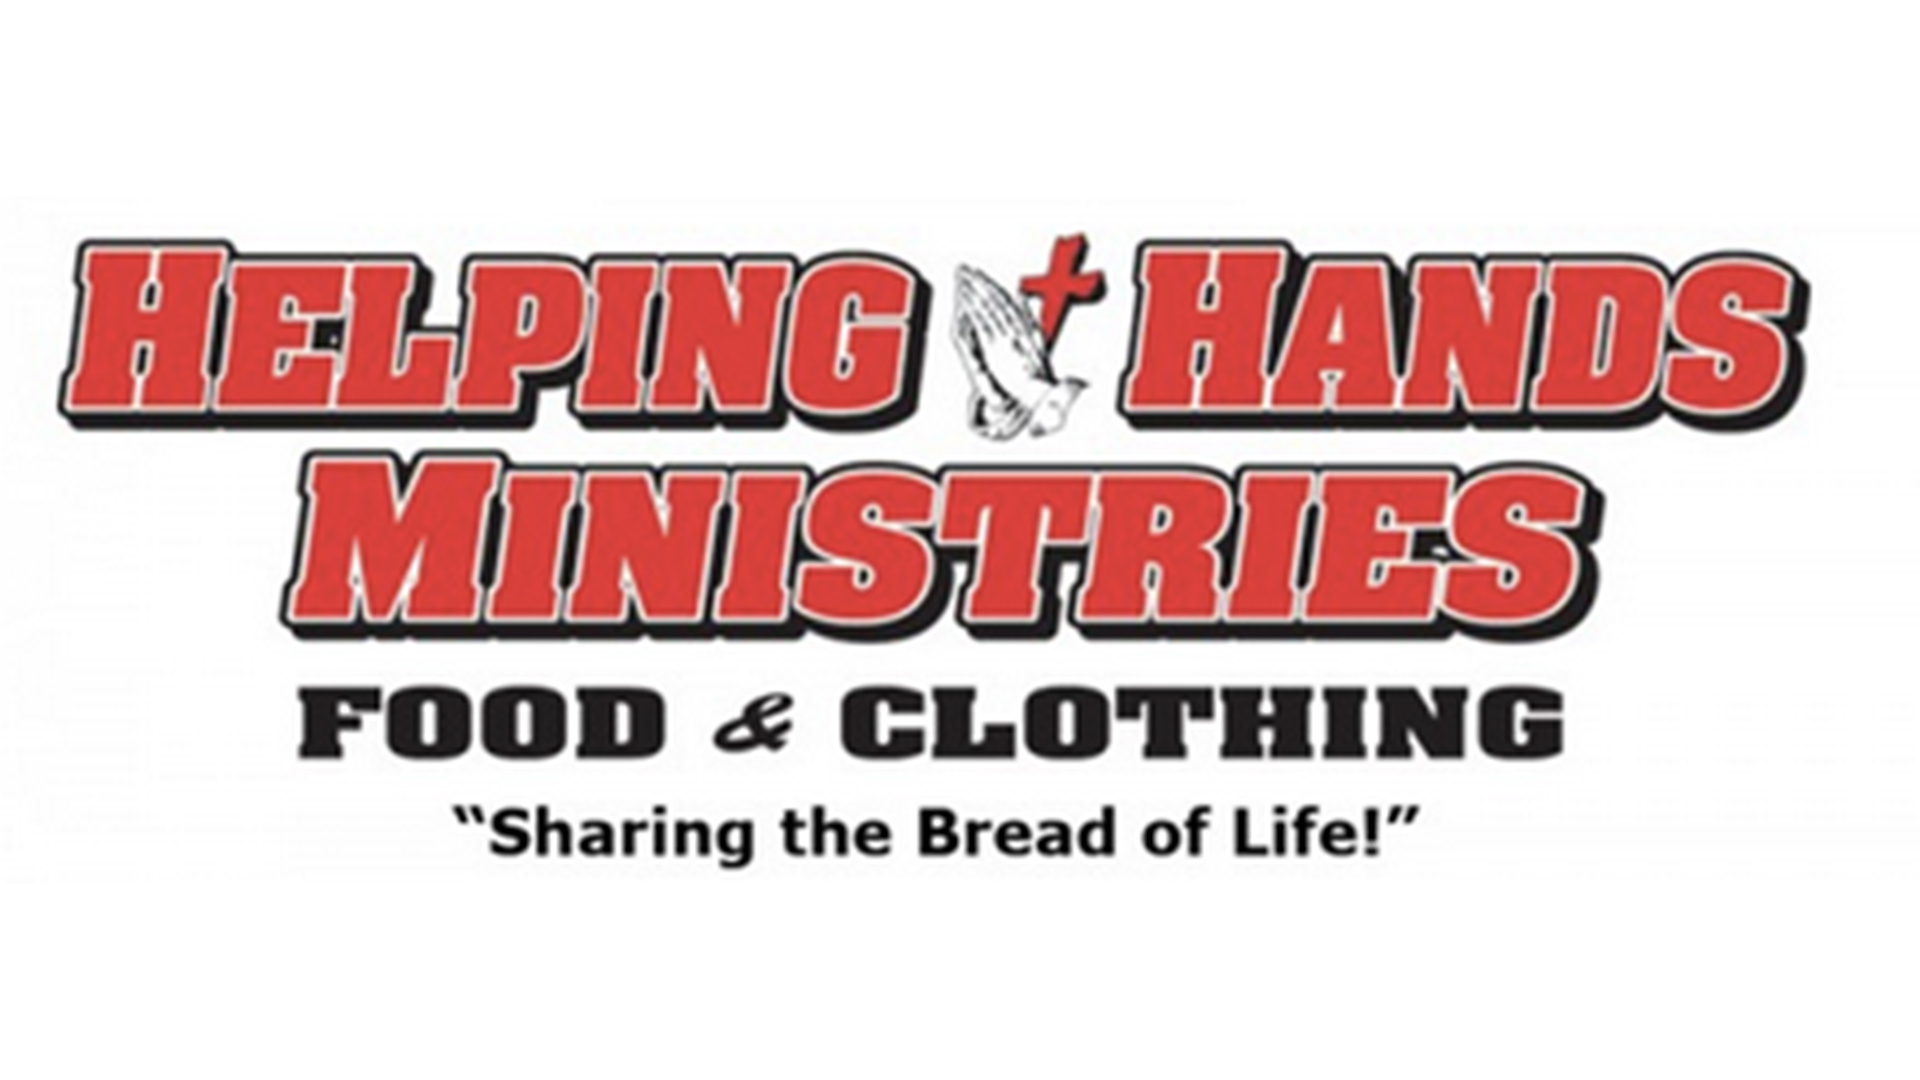 Helping Hands Ministries - Carl Junction Helping Hands Ministry was opened in May 2011 to provide support to residents within the Carl Junction school district.